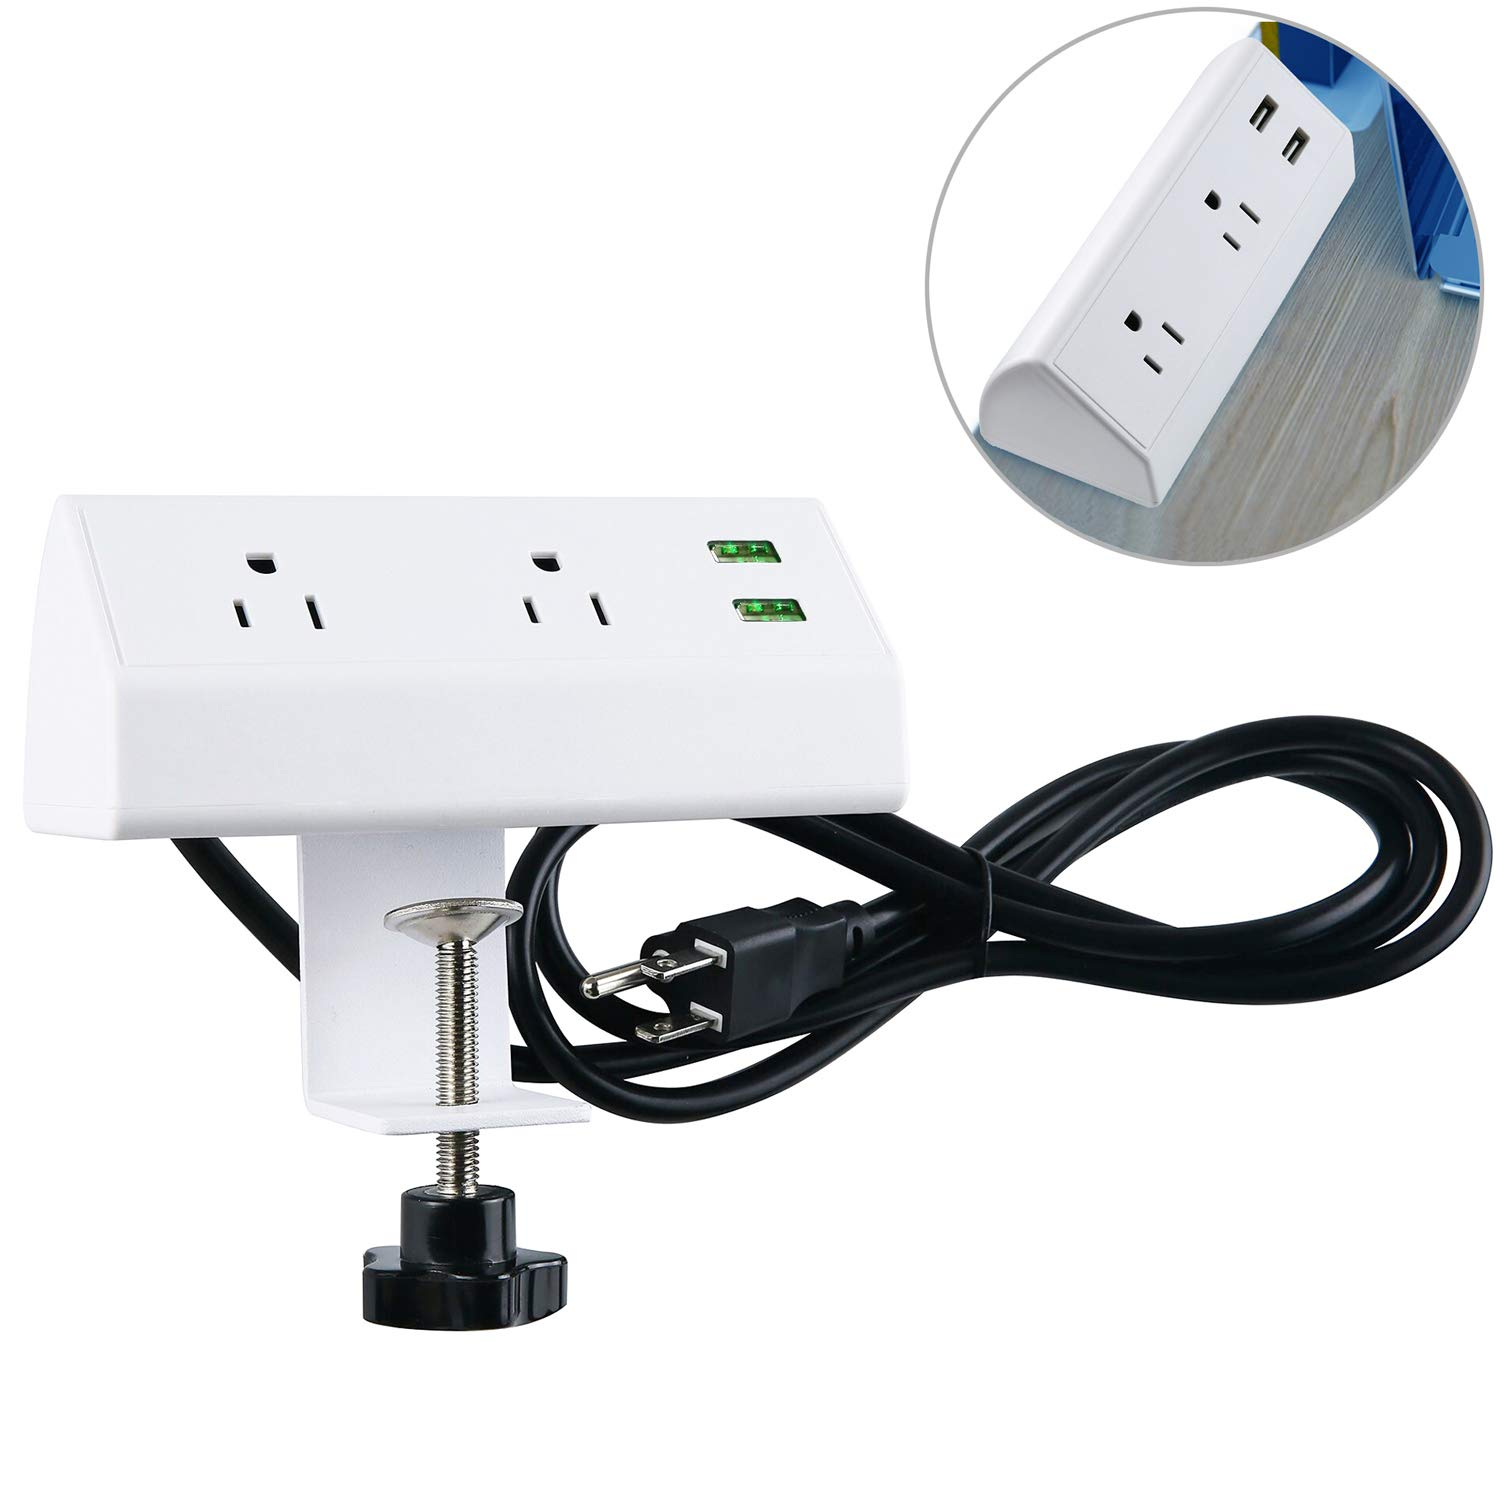 Desktop Power Strip Socket with USB, Conference Desk Power Outlets with Clamp Mount, 4.9 ft Extension Cord Connect 2 Plugs for Home Office Reading